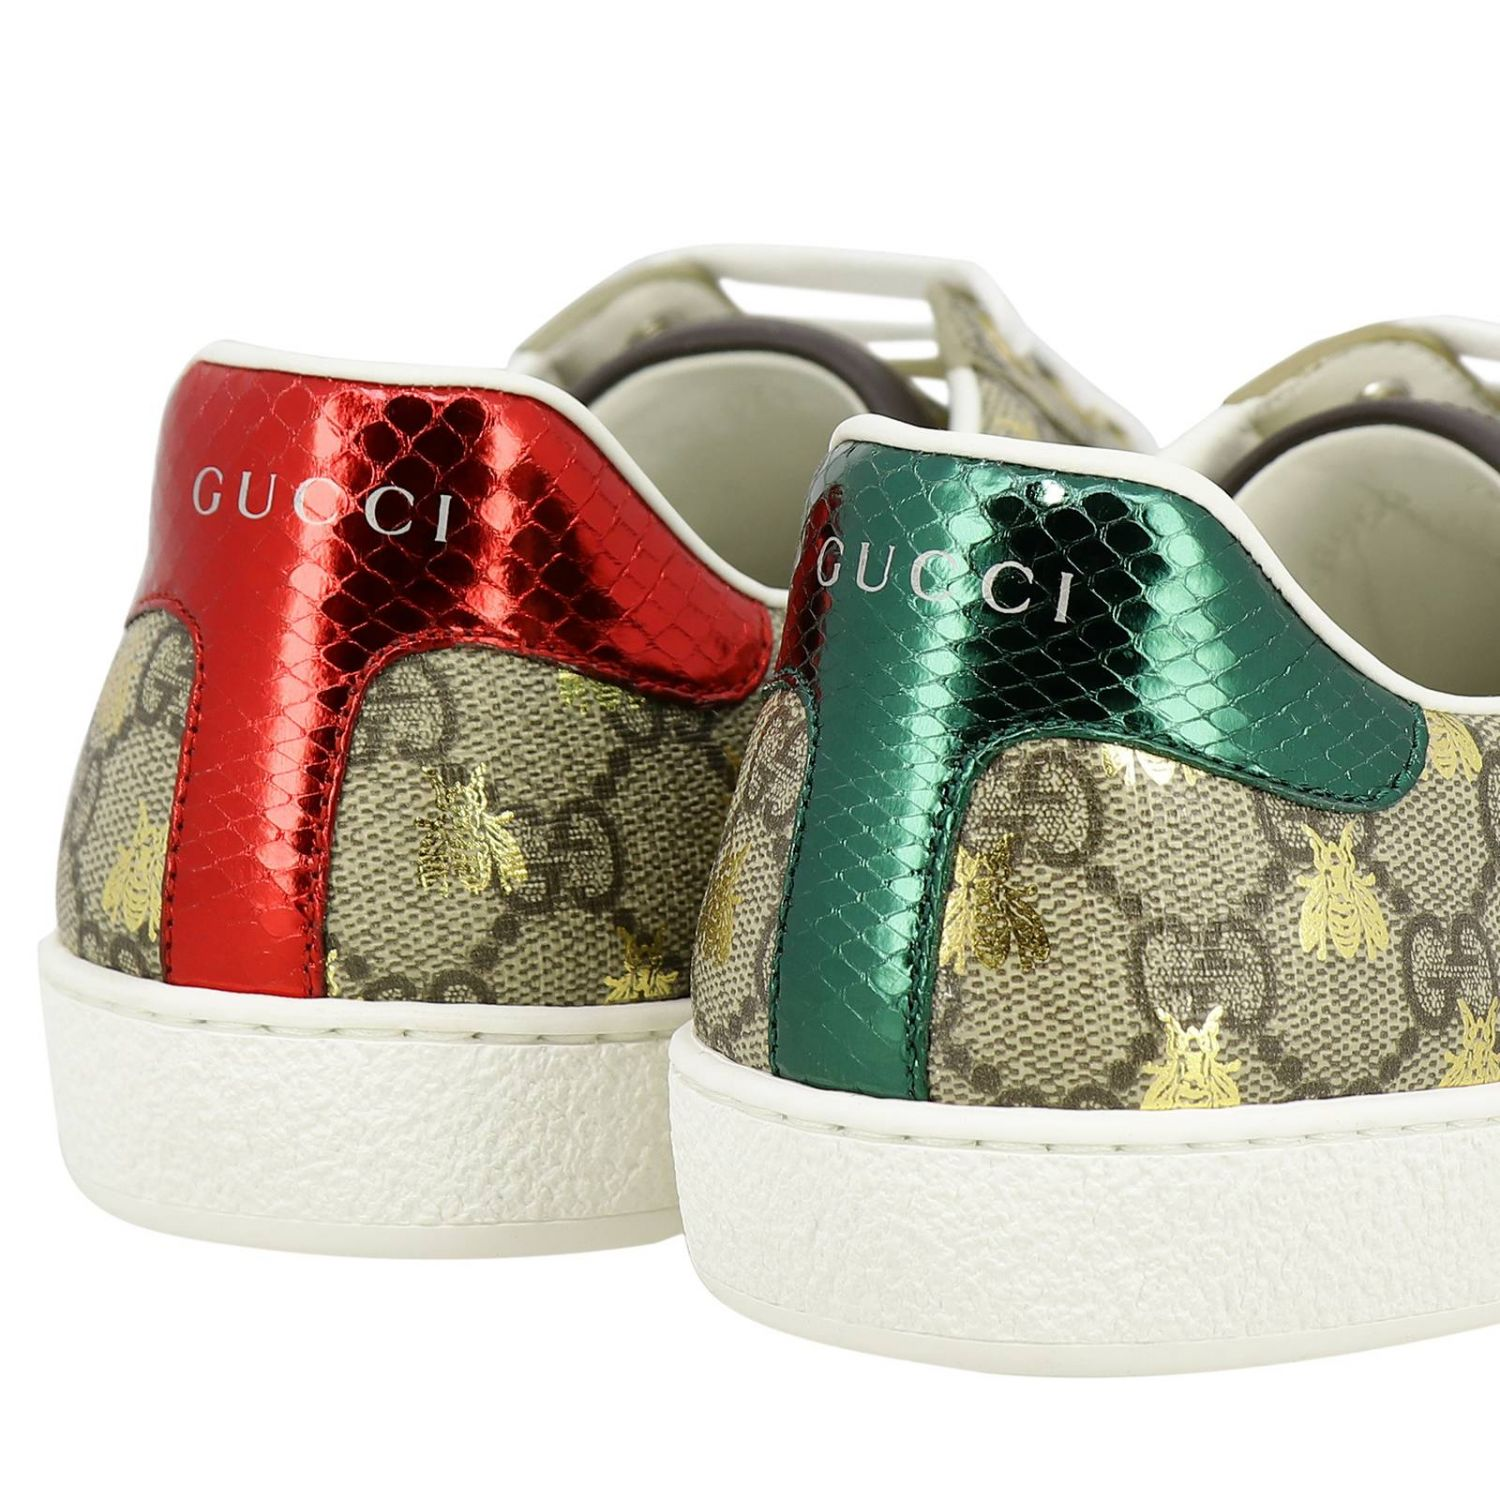 Sneakers New Ace in pelle GG Supreme Gucci con fasce Web e stampa Ape all over beige 4